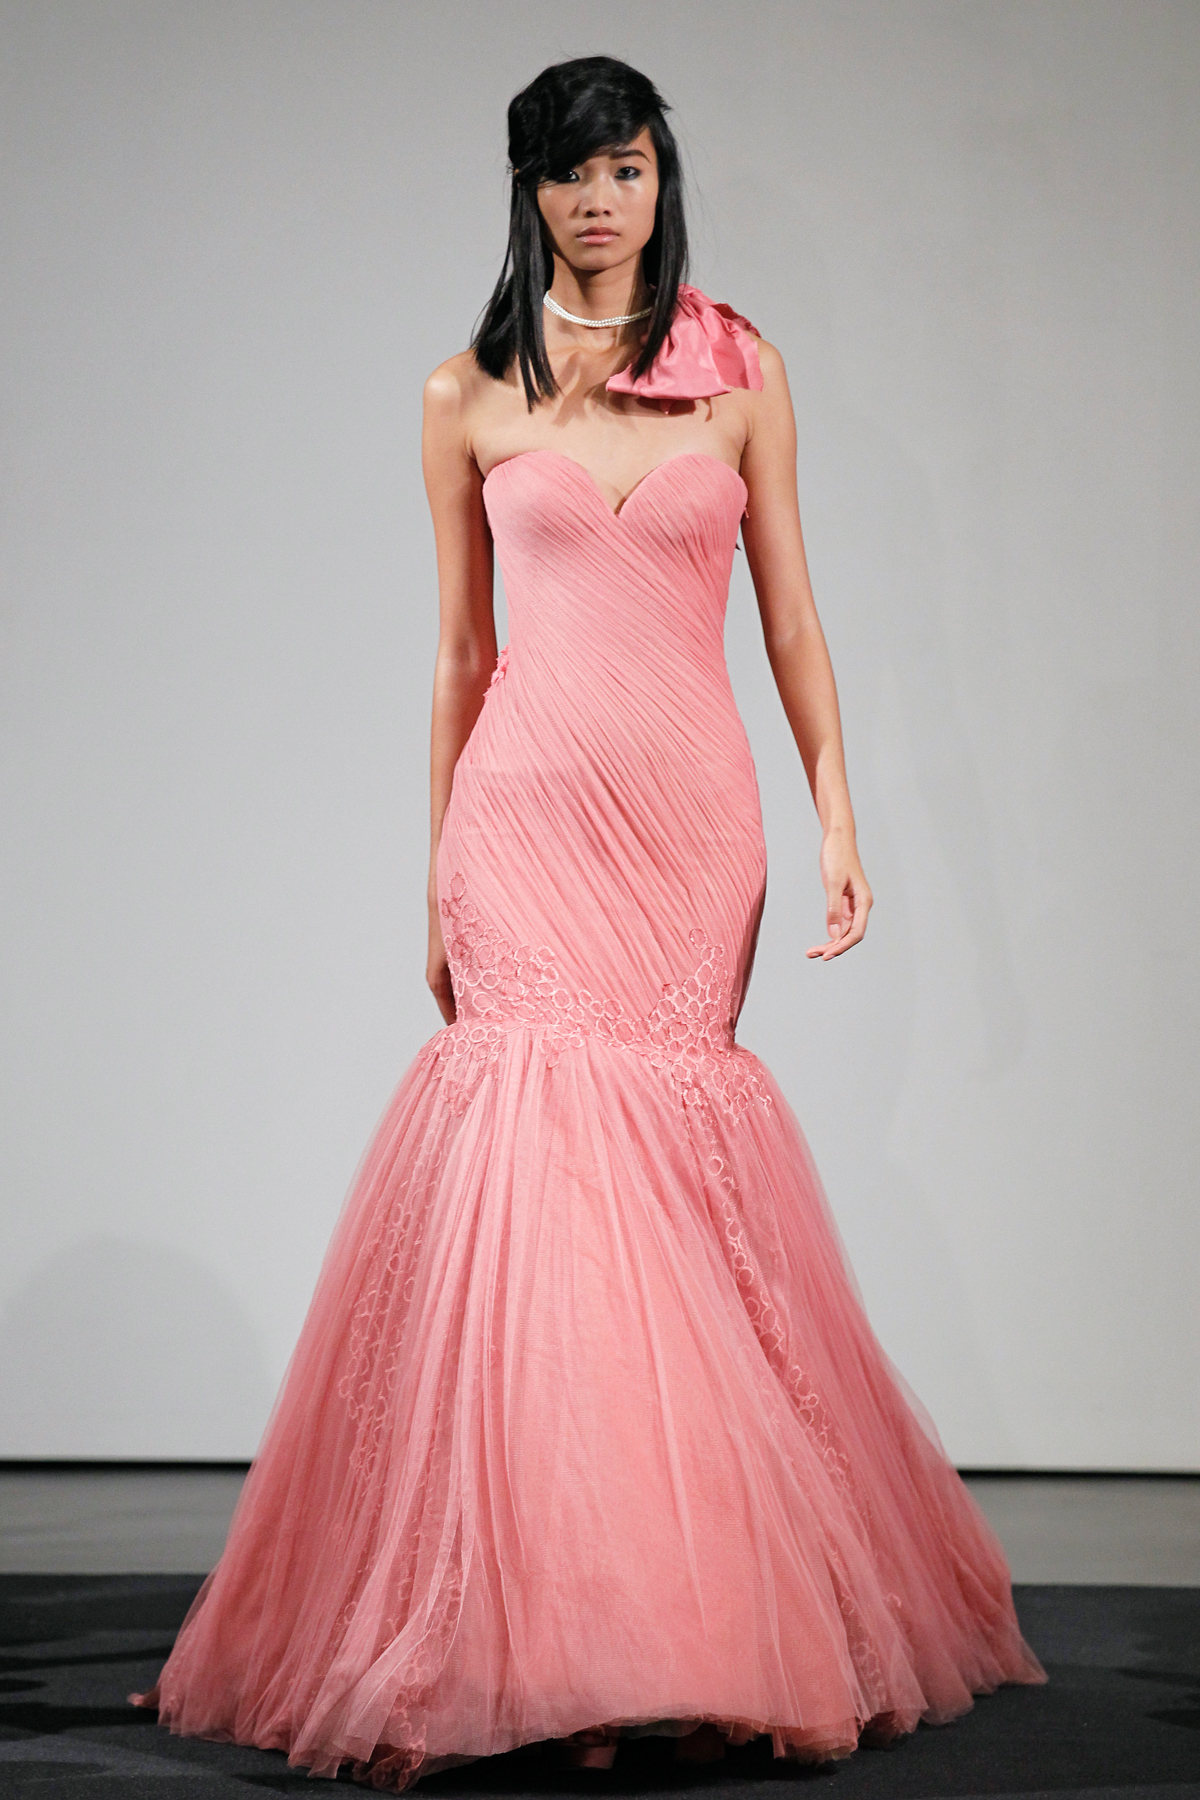 Vera Wang Pink Dress